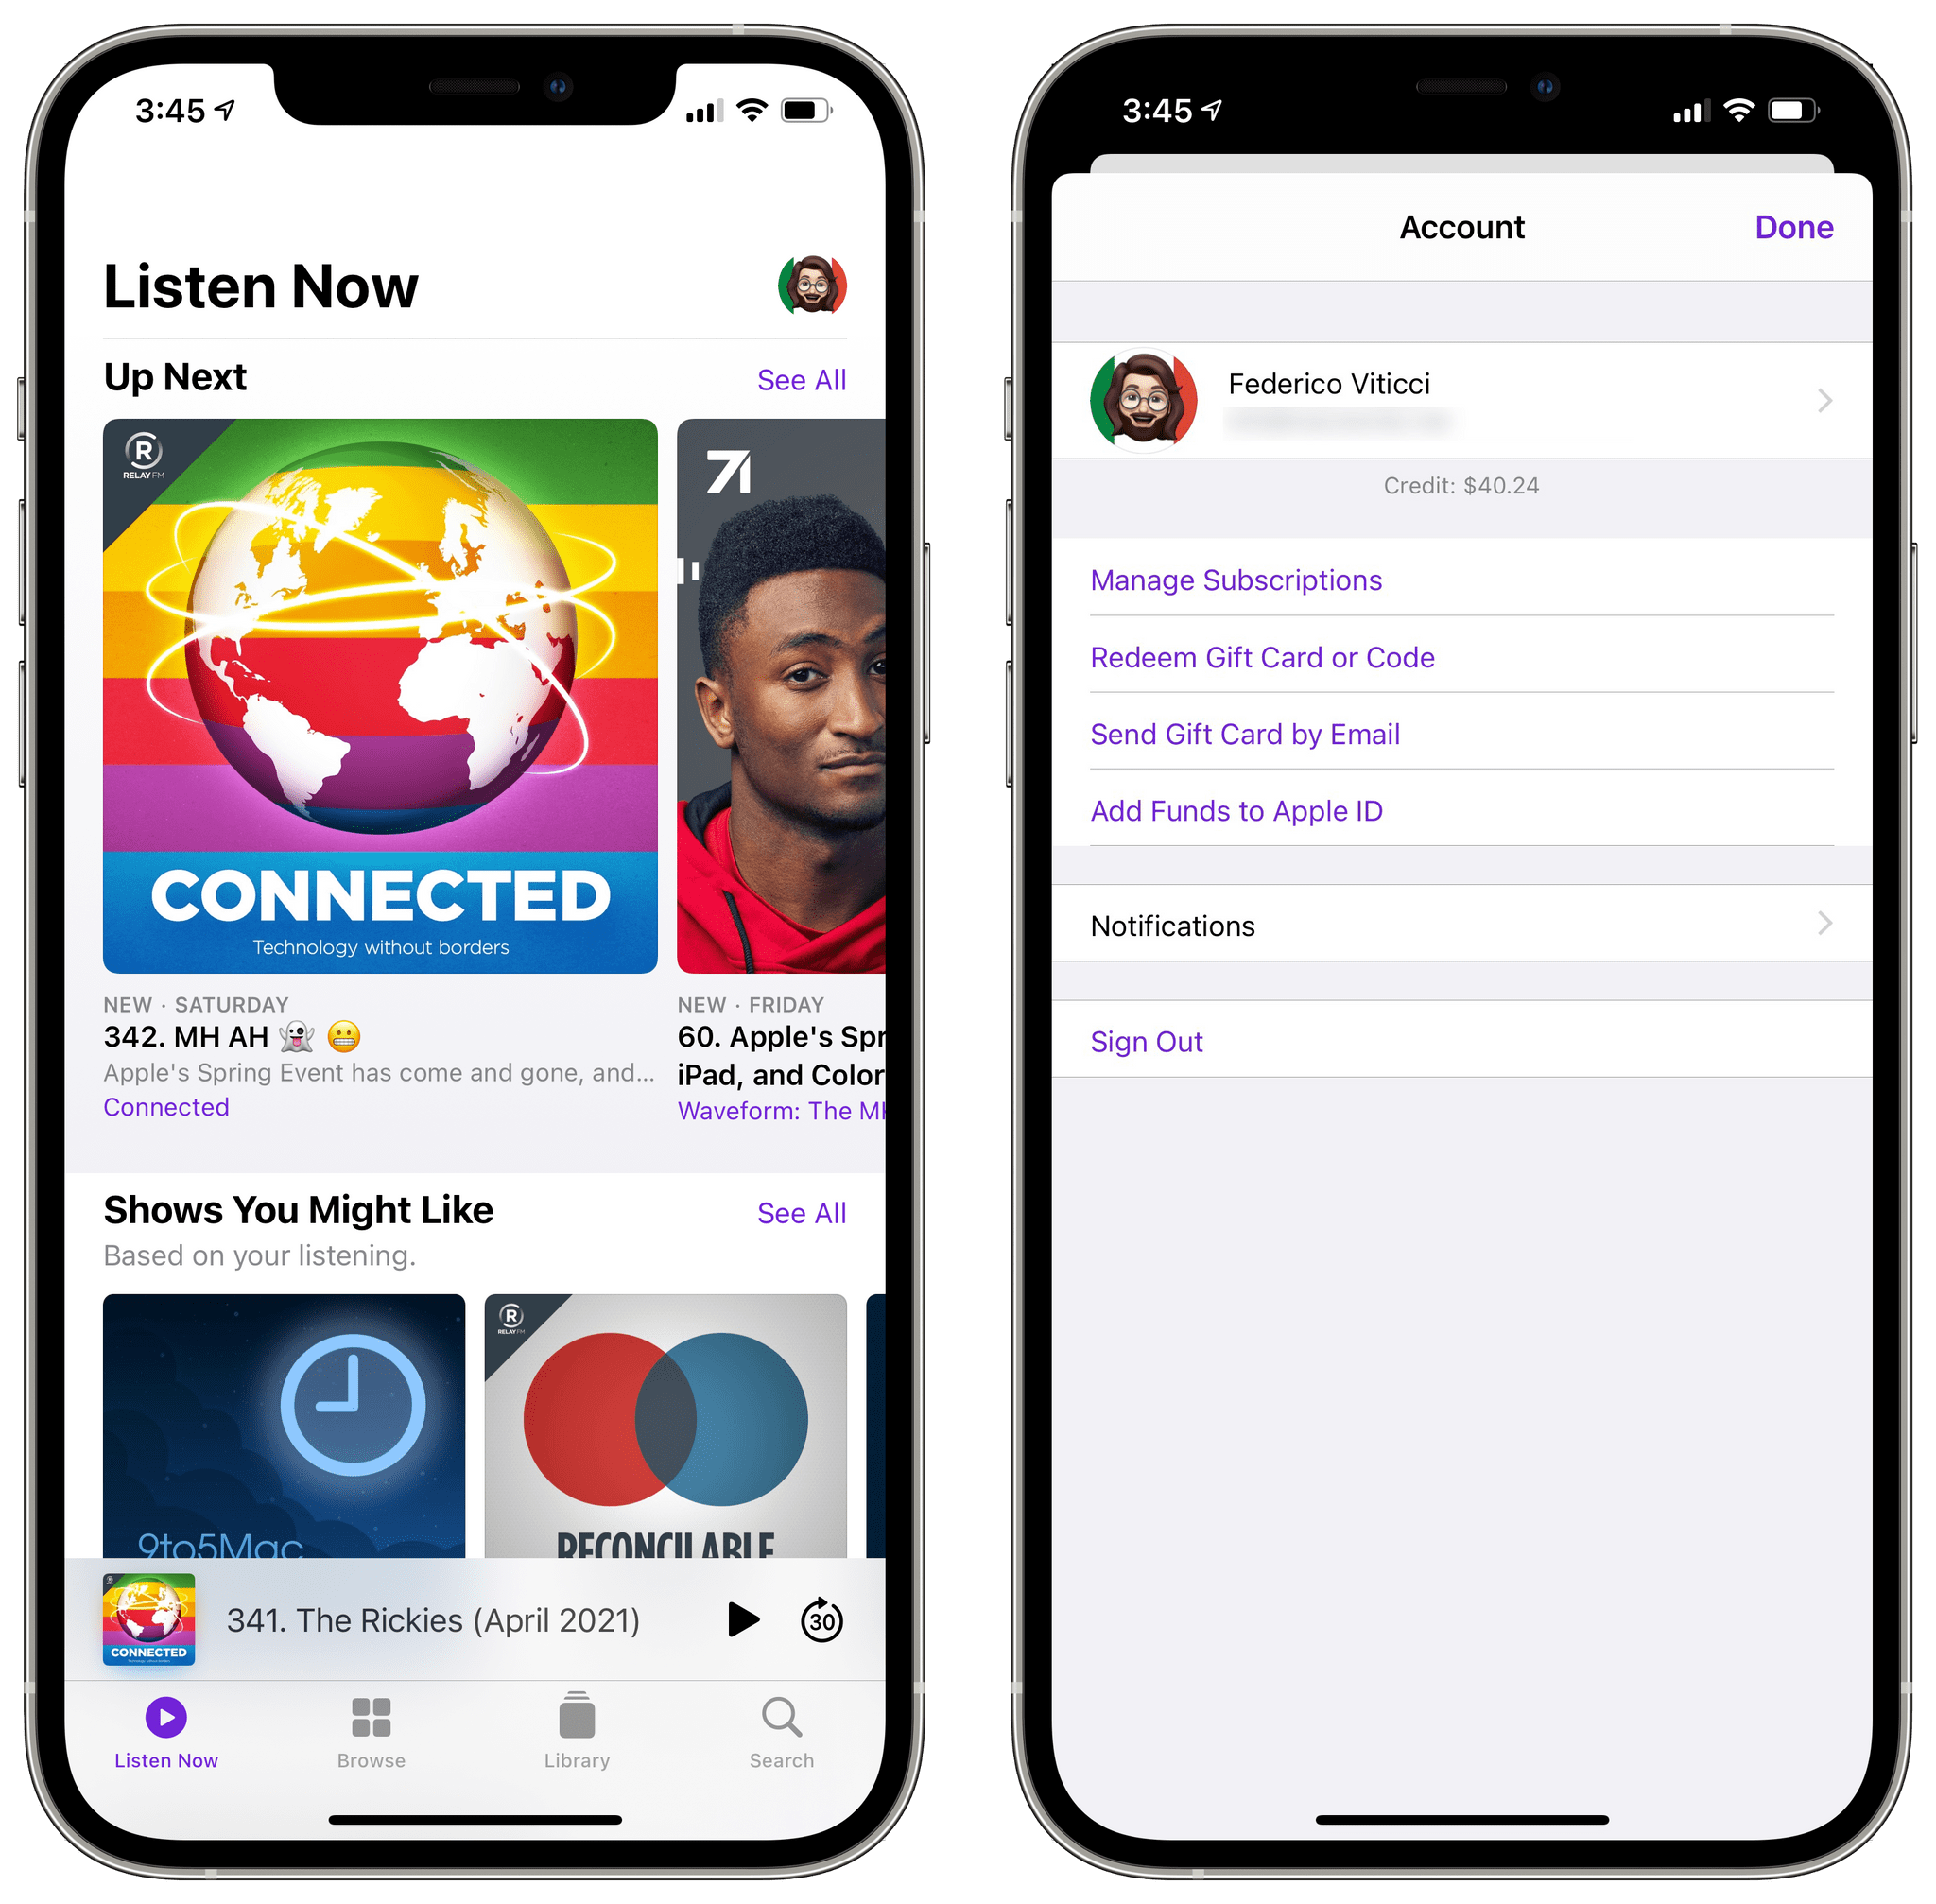 You can now access your Account page from the Listen Now tab in iOS 14.5. In 14.6 (pictured above), you'll also be able to manage Apple Podcasts Subscriptions from this page.